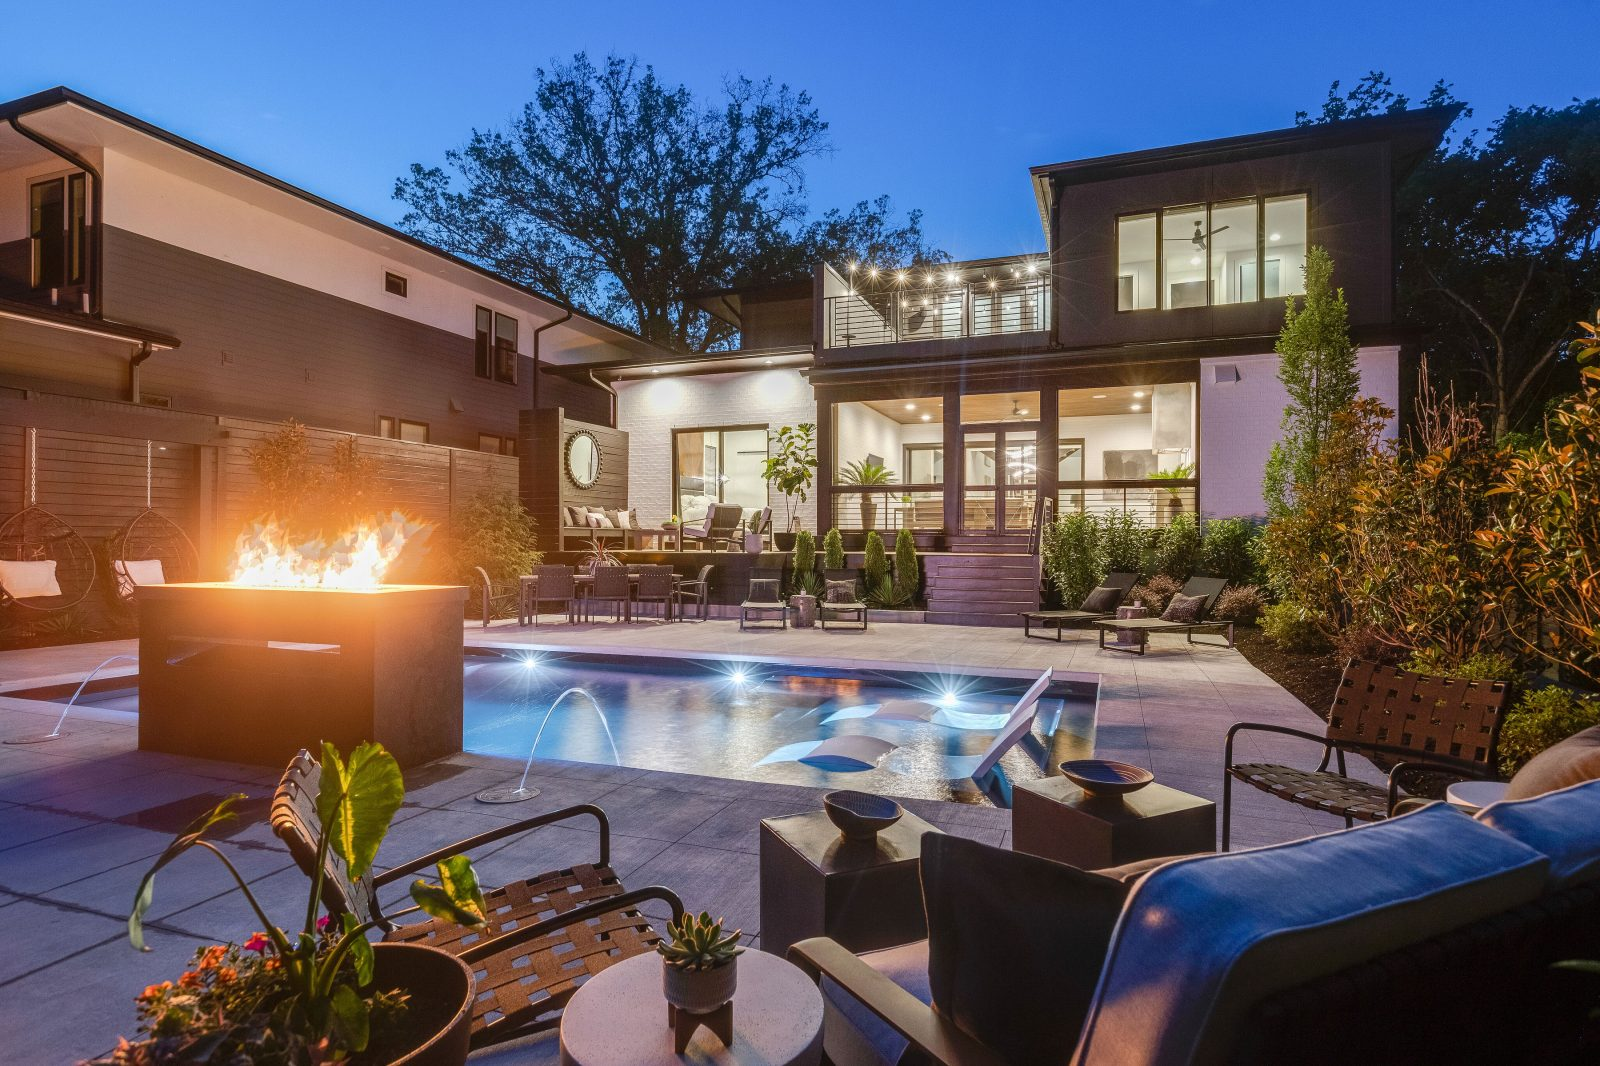 Backyard Bliss by the Nashville Edit, Green Hills Tennessee, hideaway at night